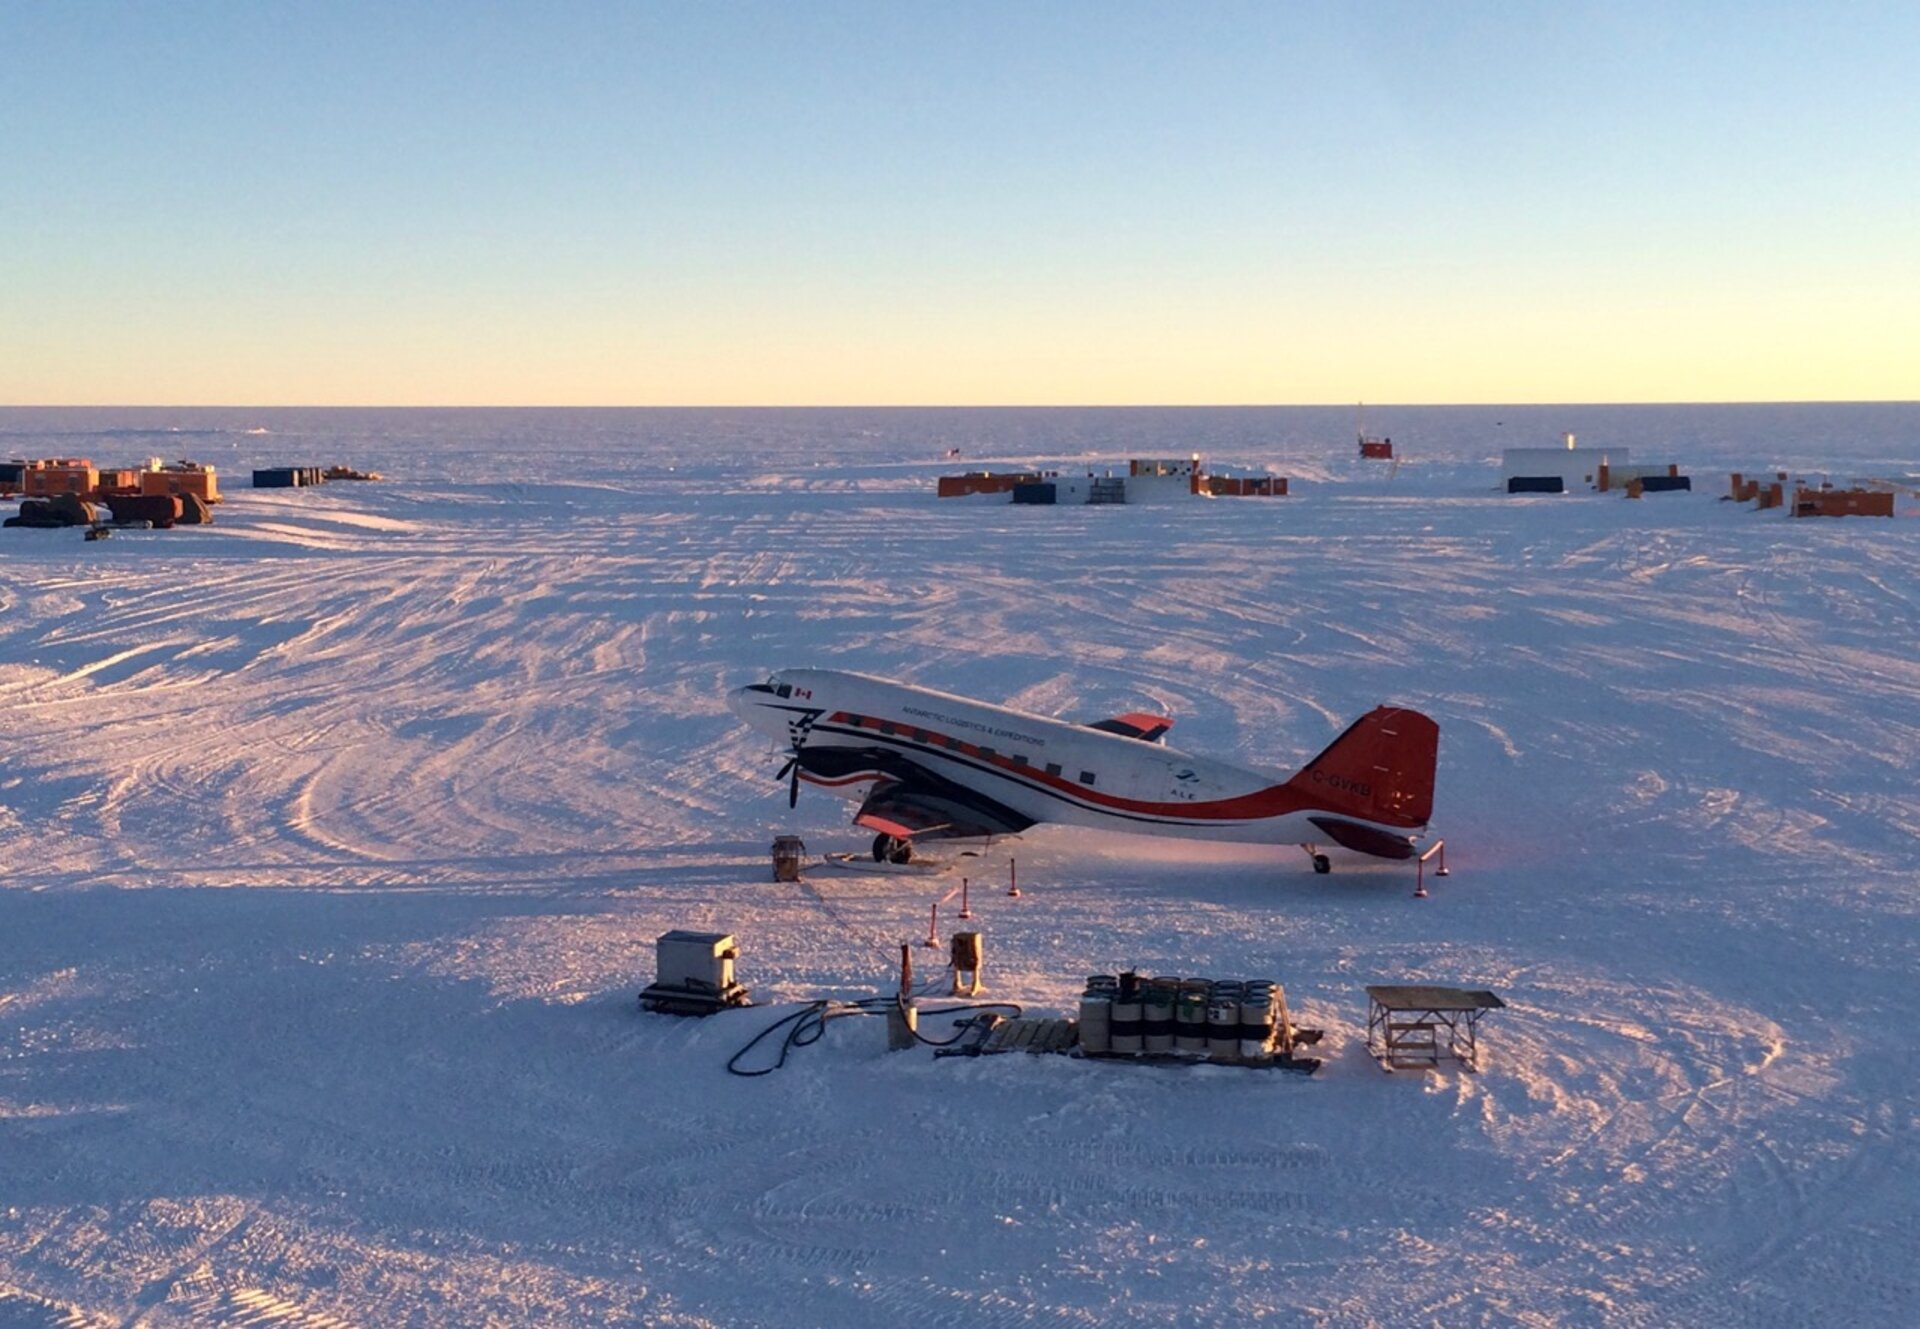 Antarctic air transport